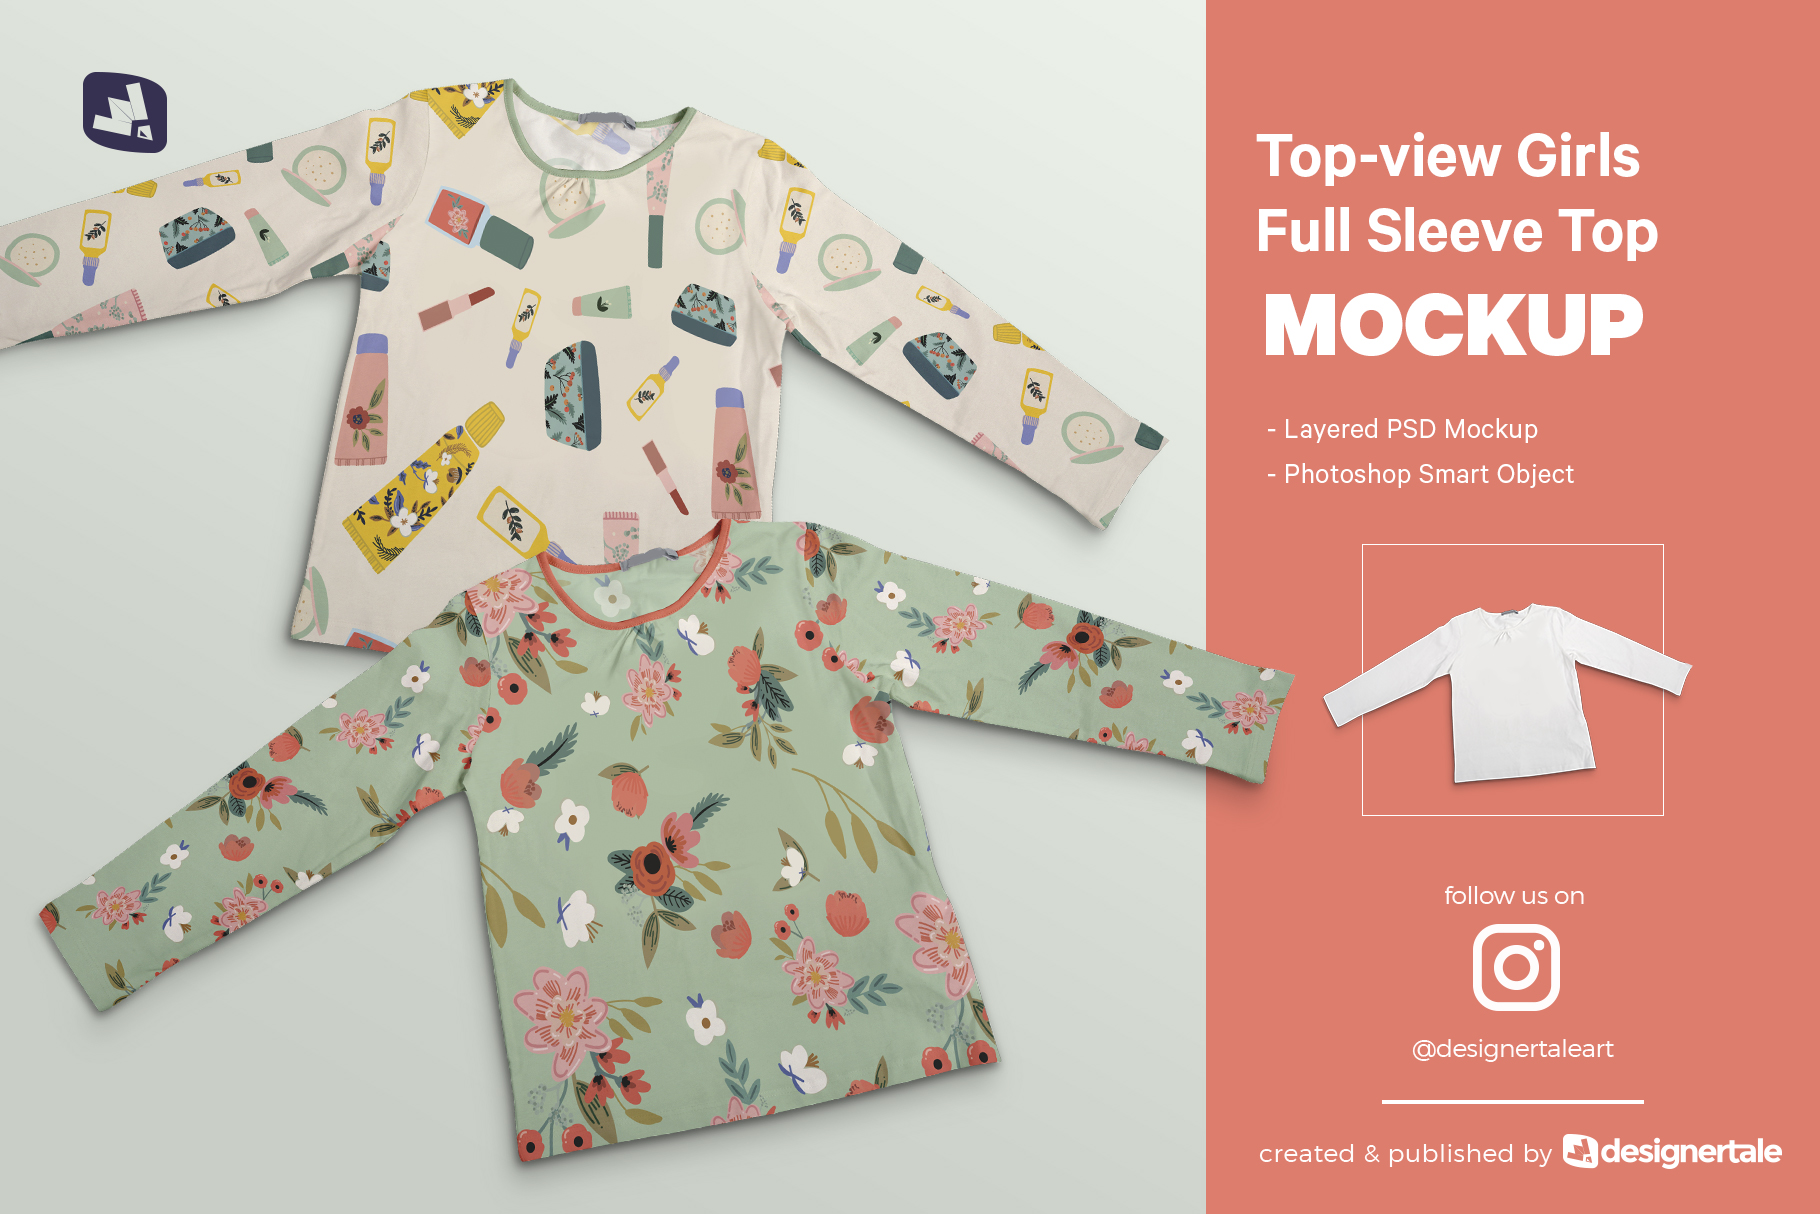 Top-View Girl's Full Sleeve Top Mockup